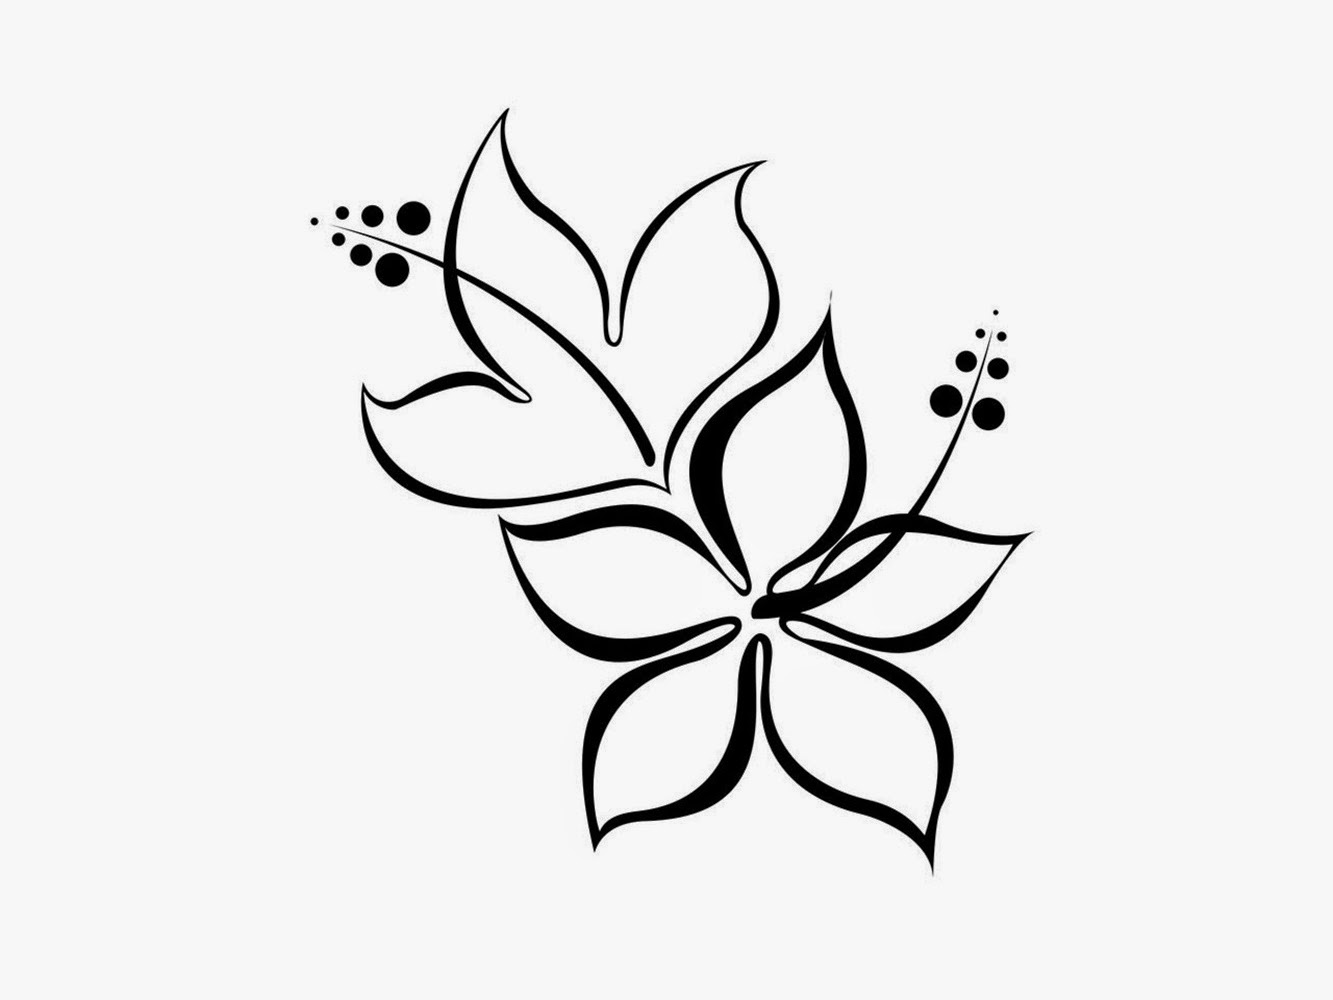 Simple flower designs black and white - Any design using black and white ...